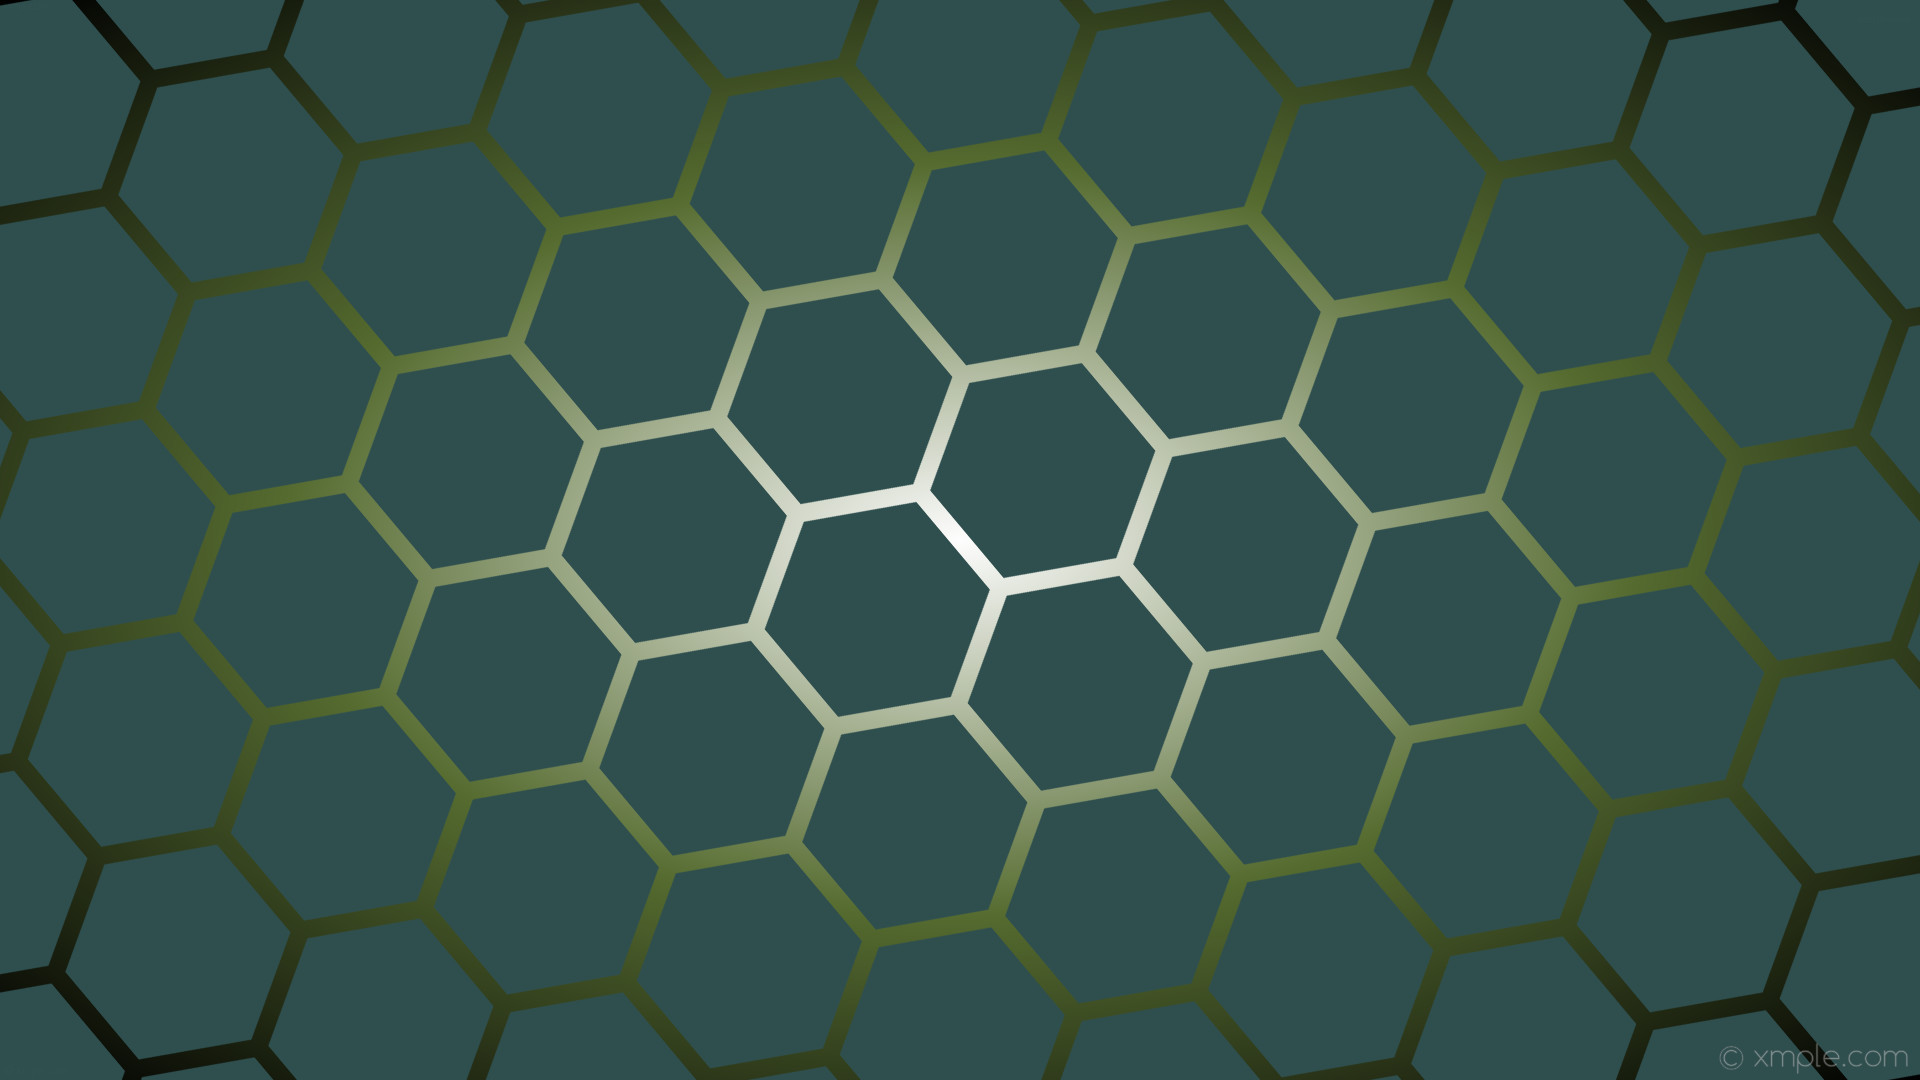 wallpaper green grey gradient black glow white hexagon dark slate gray dark  olive green #2f4f4f